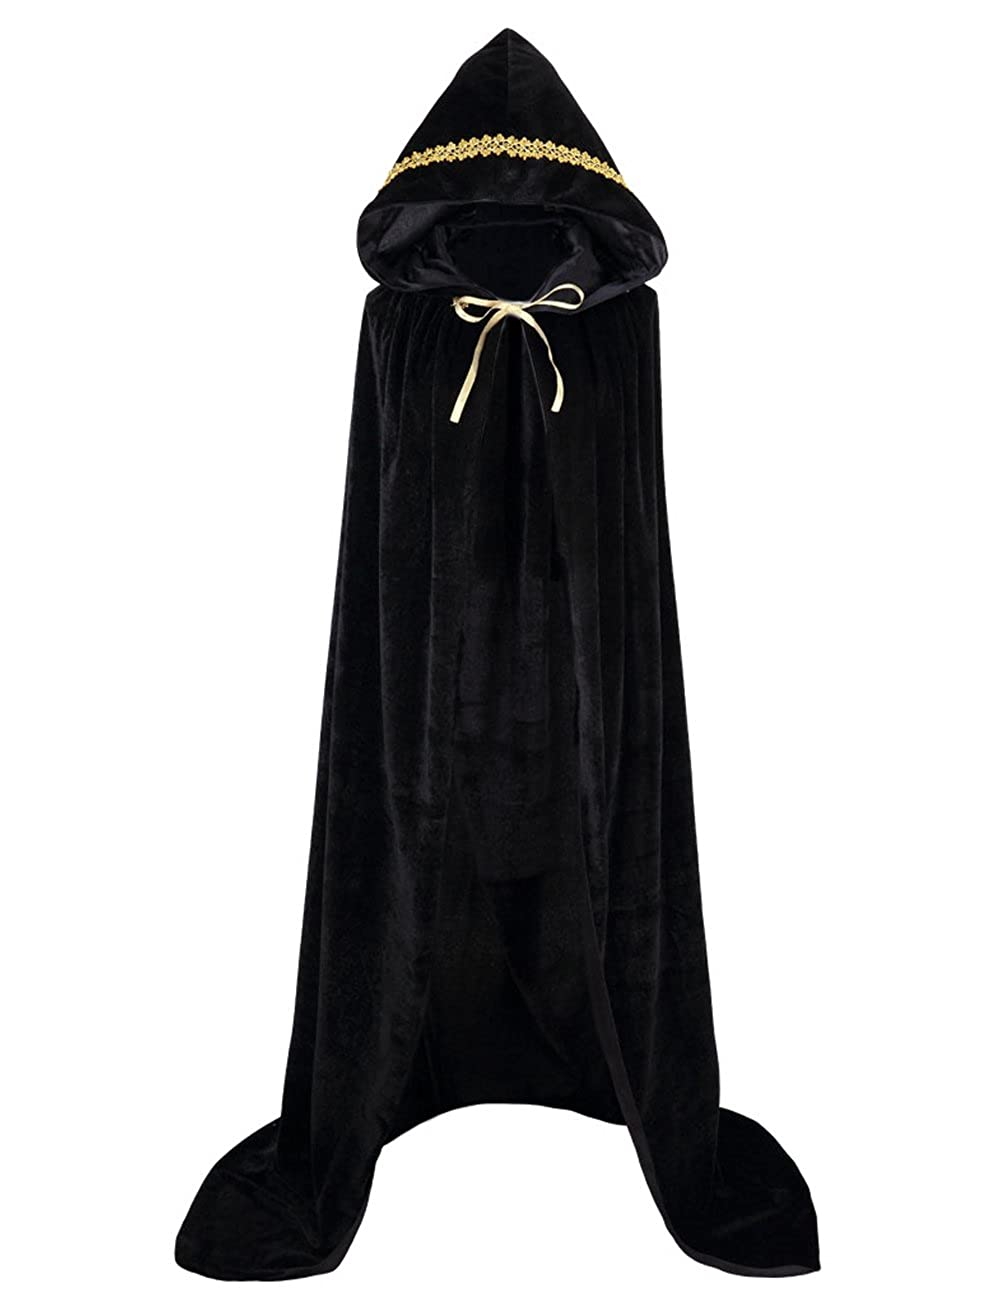 GRACIN Adult Costume Hooded Cloak, Unisex Full Length Velvet Cape for Halloween Party Black)